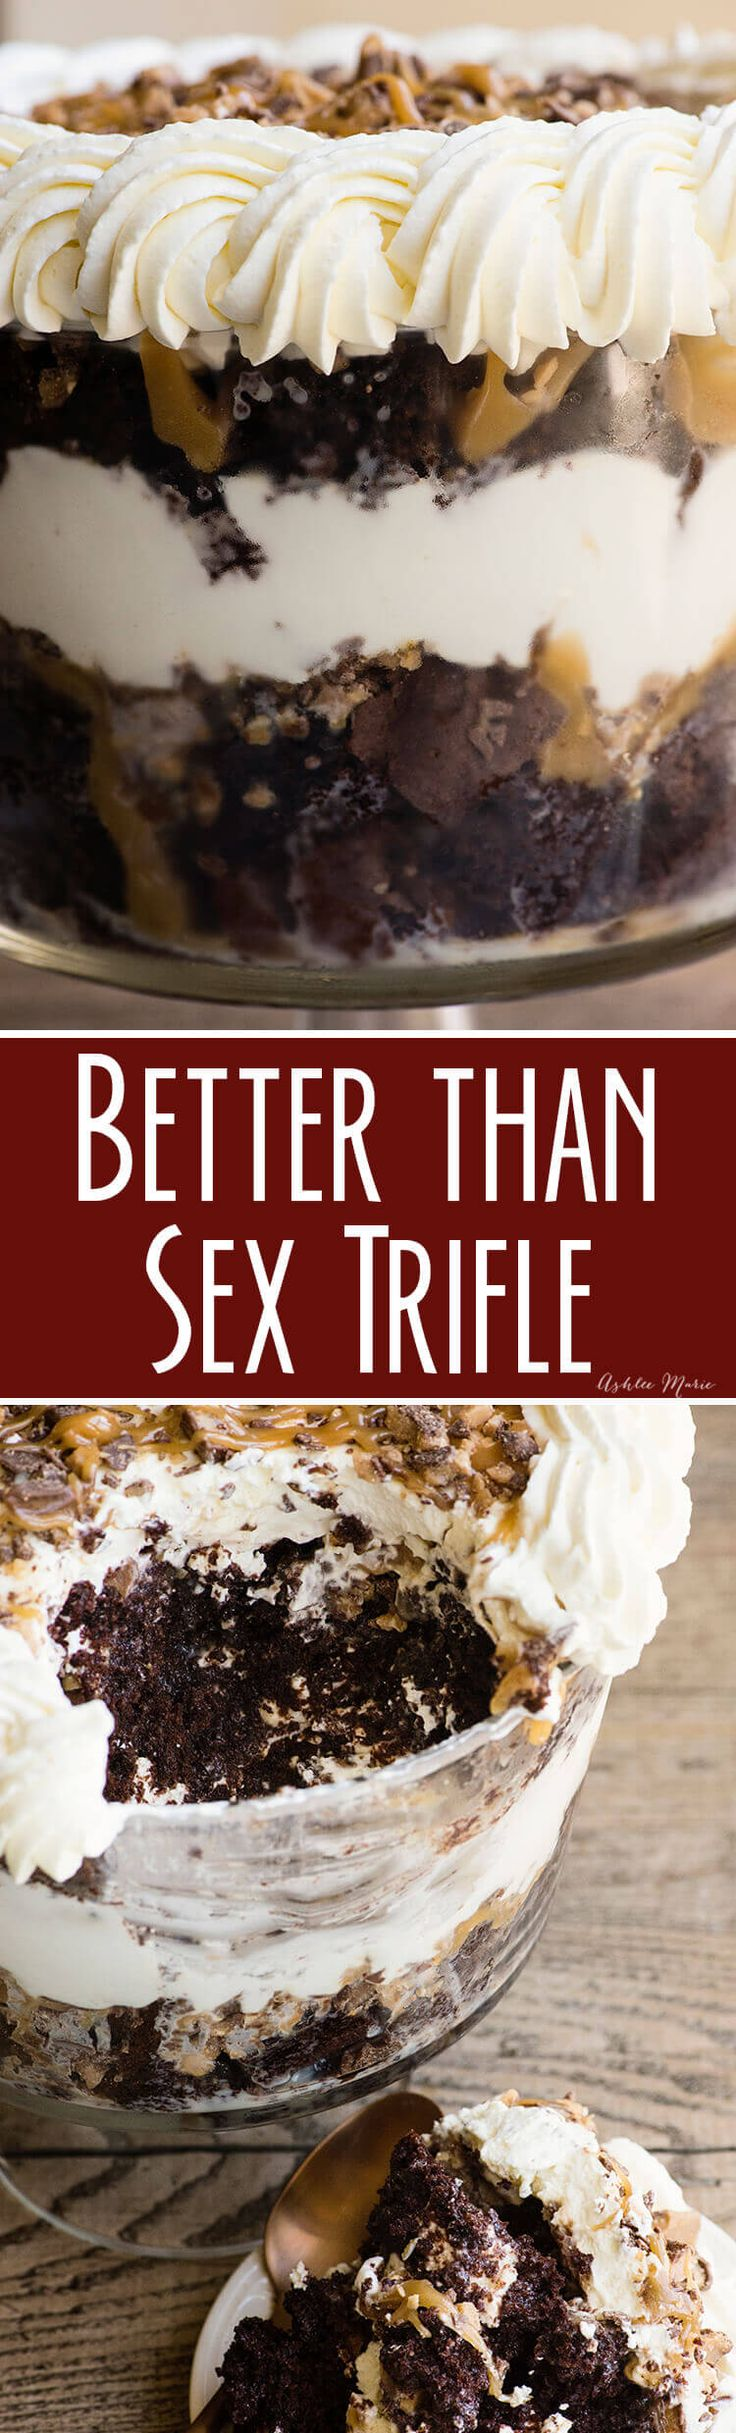 Better than Sex trifle recipe via @ashleemariecake